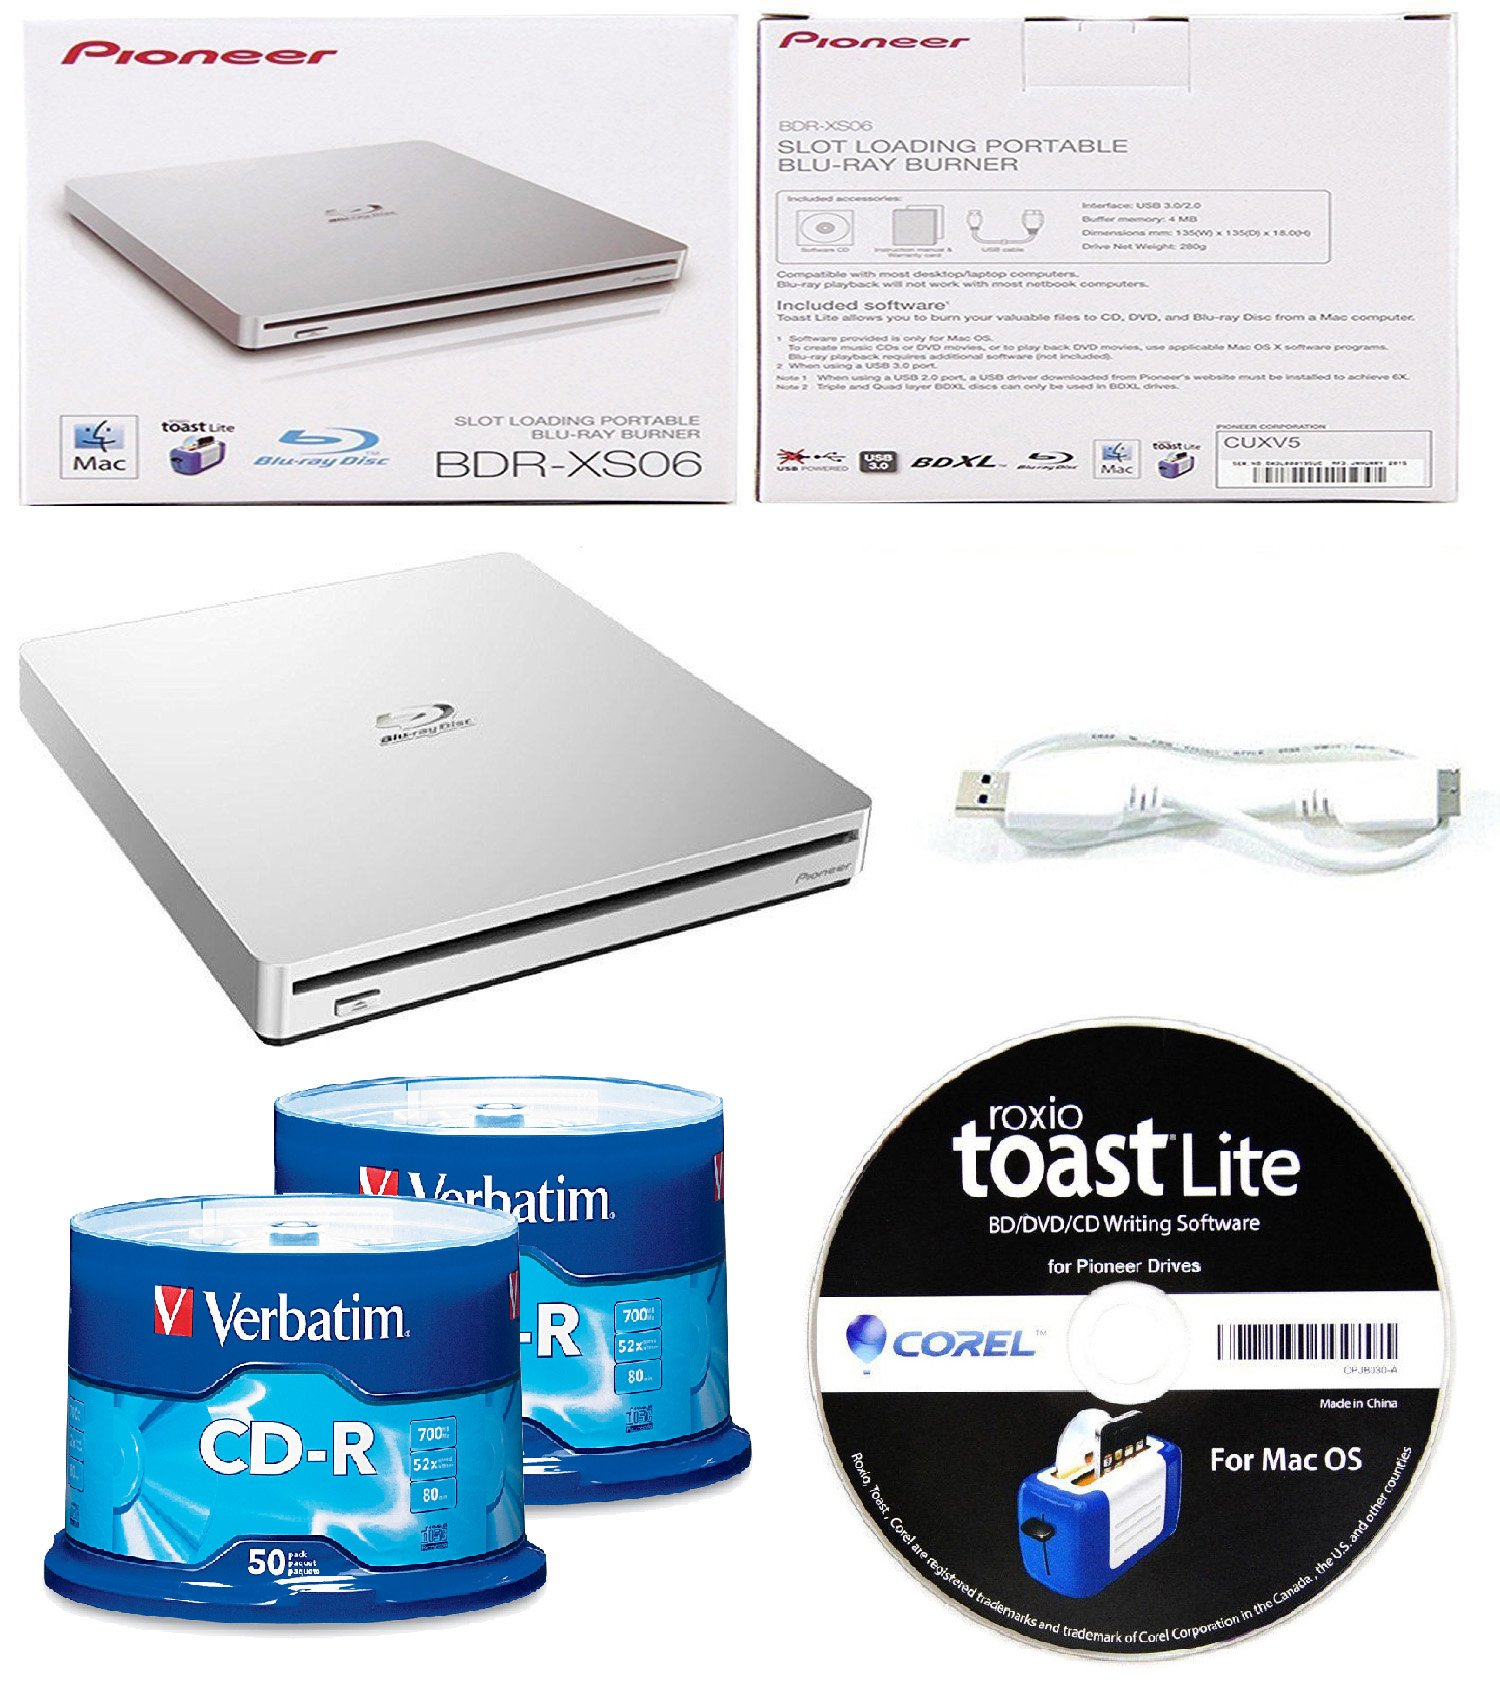 Pioneer 6x BDR-XS06 Slim Slot Portable External Blu-ray BDXL Burner, Roxio Toast Lite Software and USB Cable Bundle with 100pk Recordable CD-R Verbatim 700MB 52X with Branded Surface